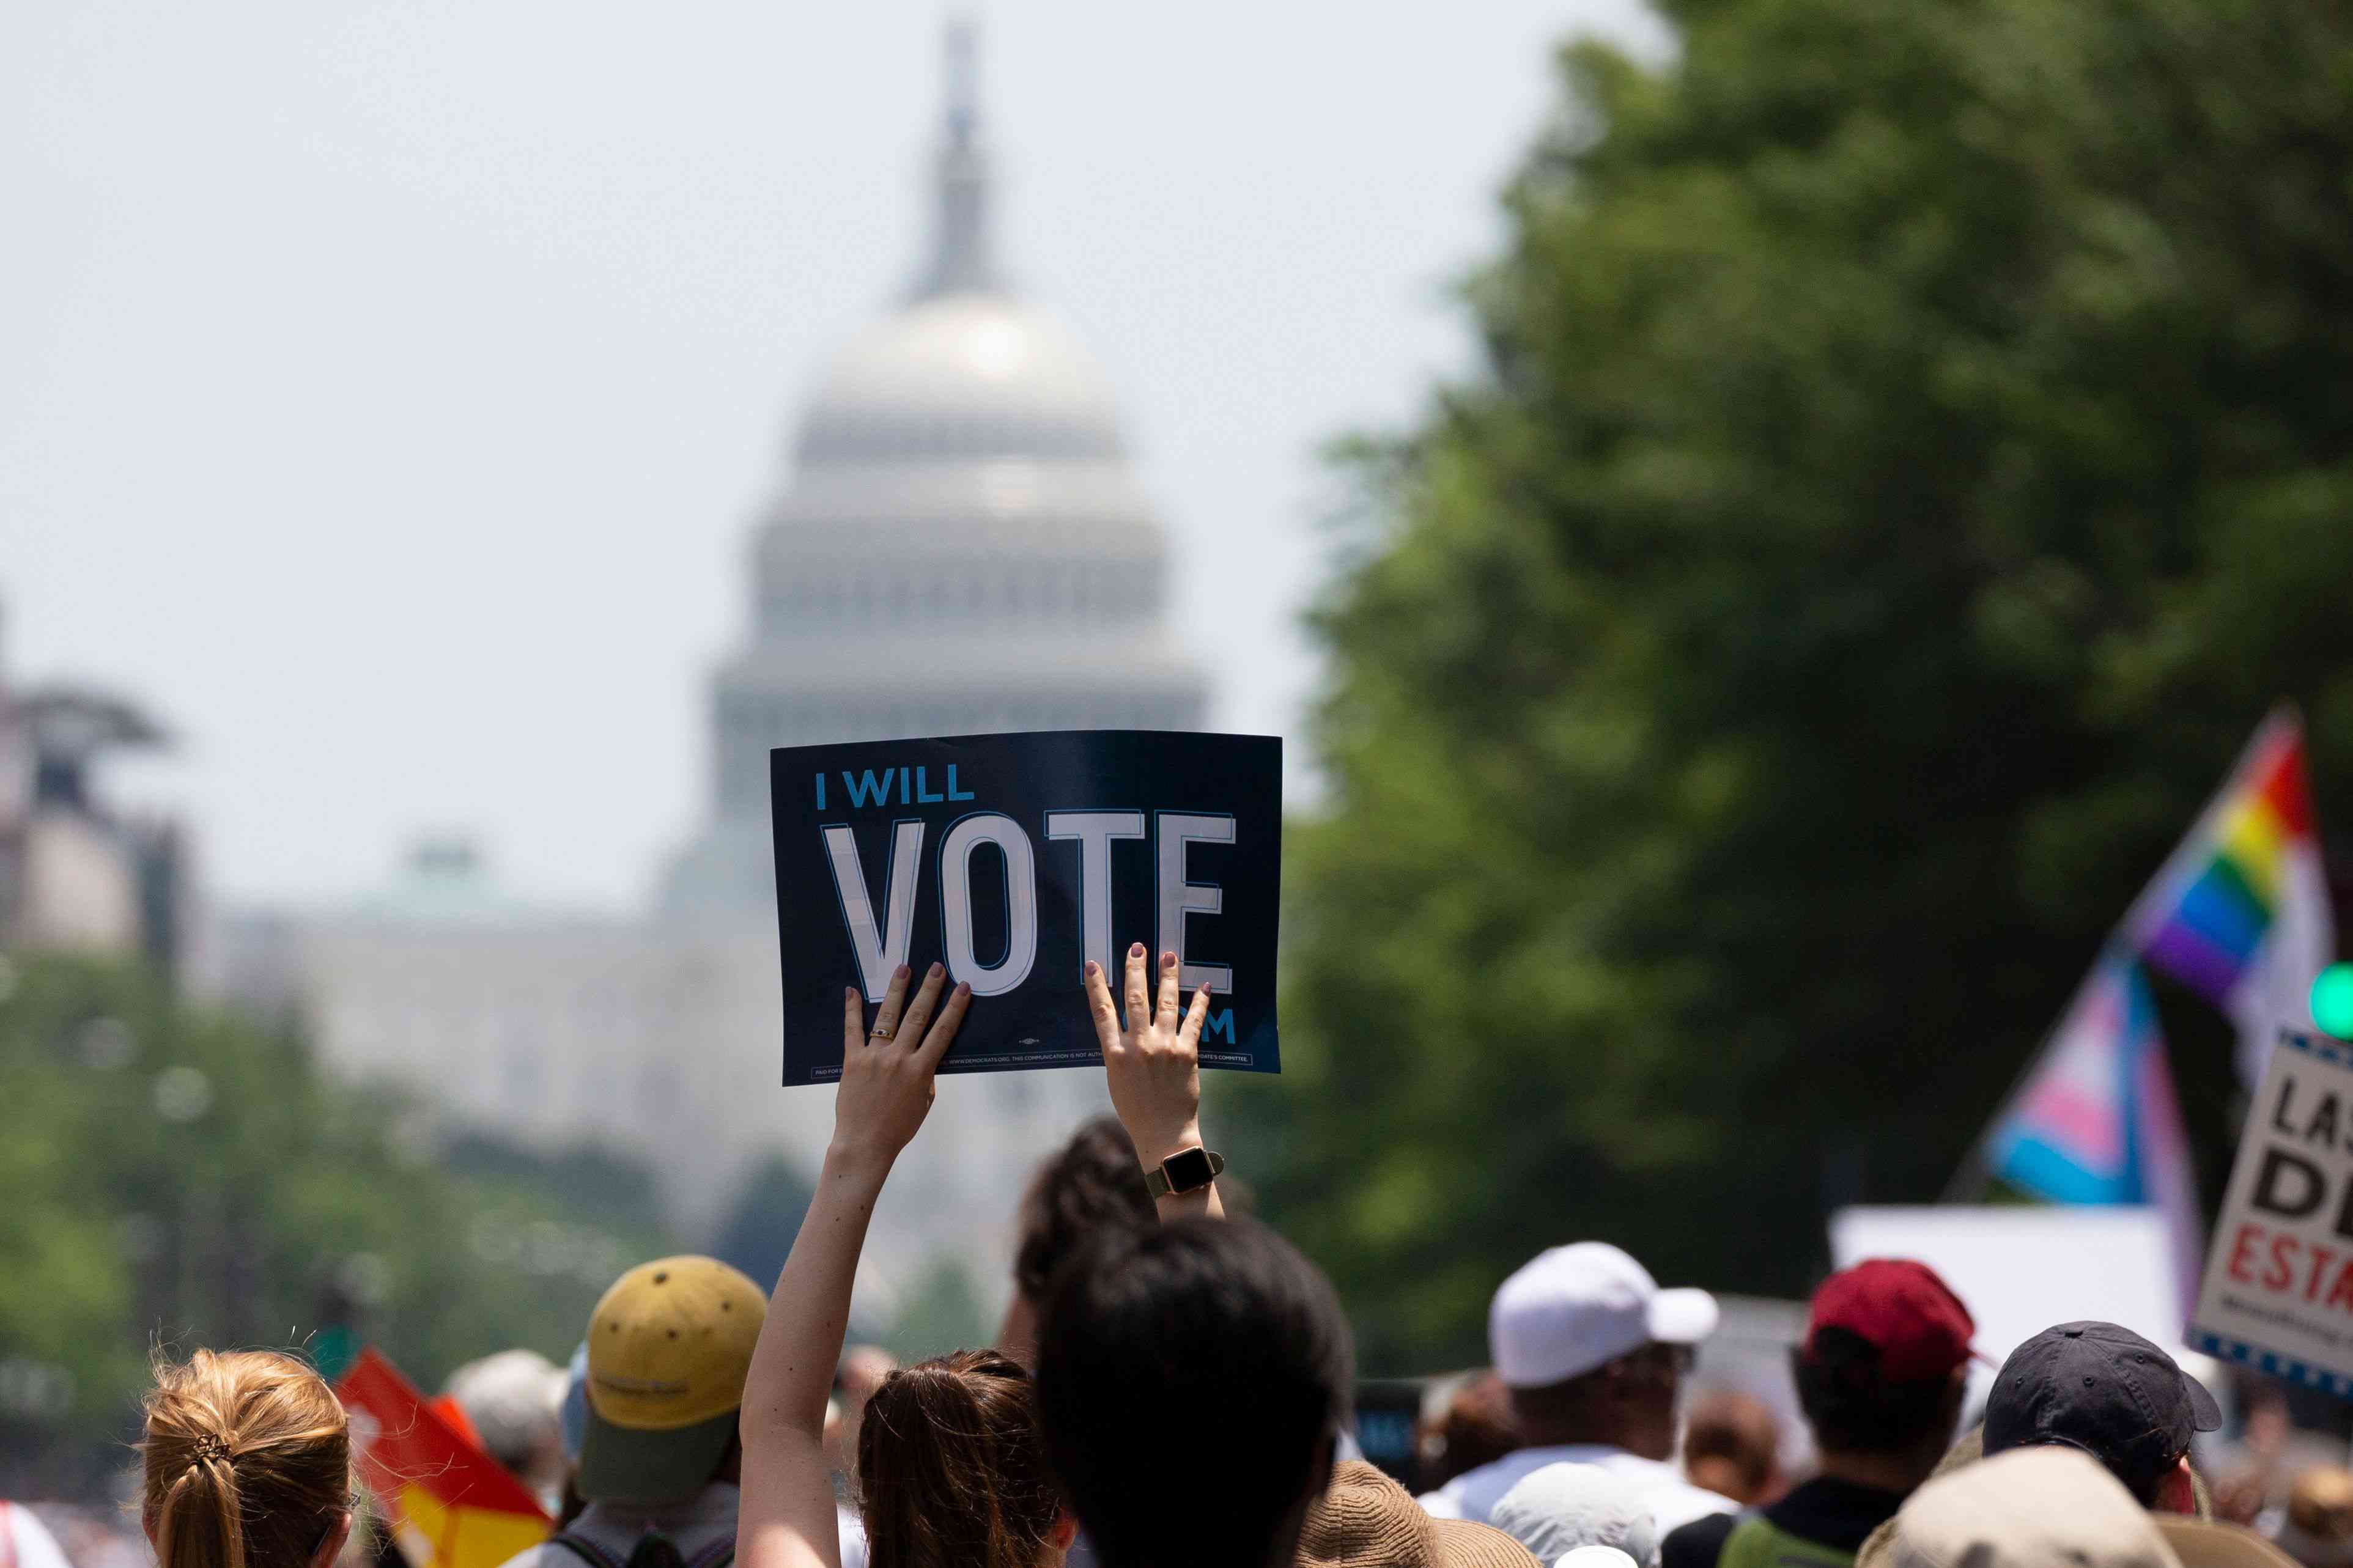 'I Will Vote' sign at protest in Washington, D.C.